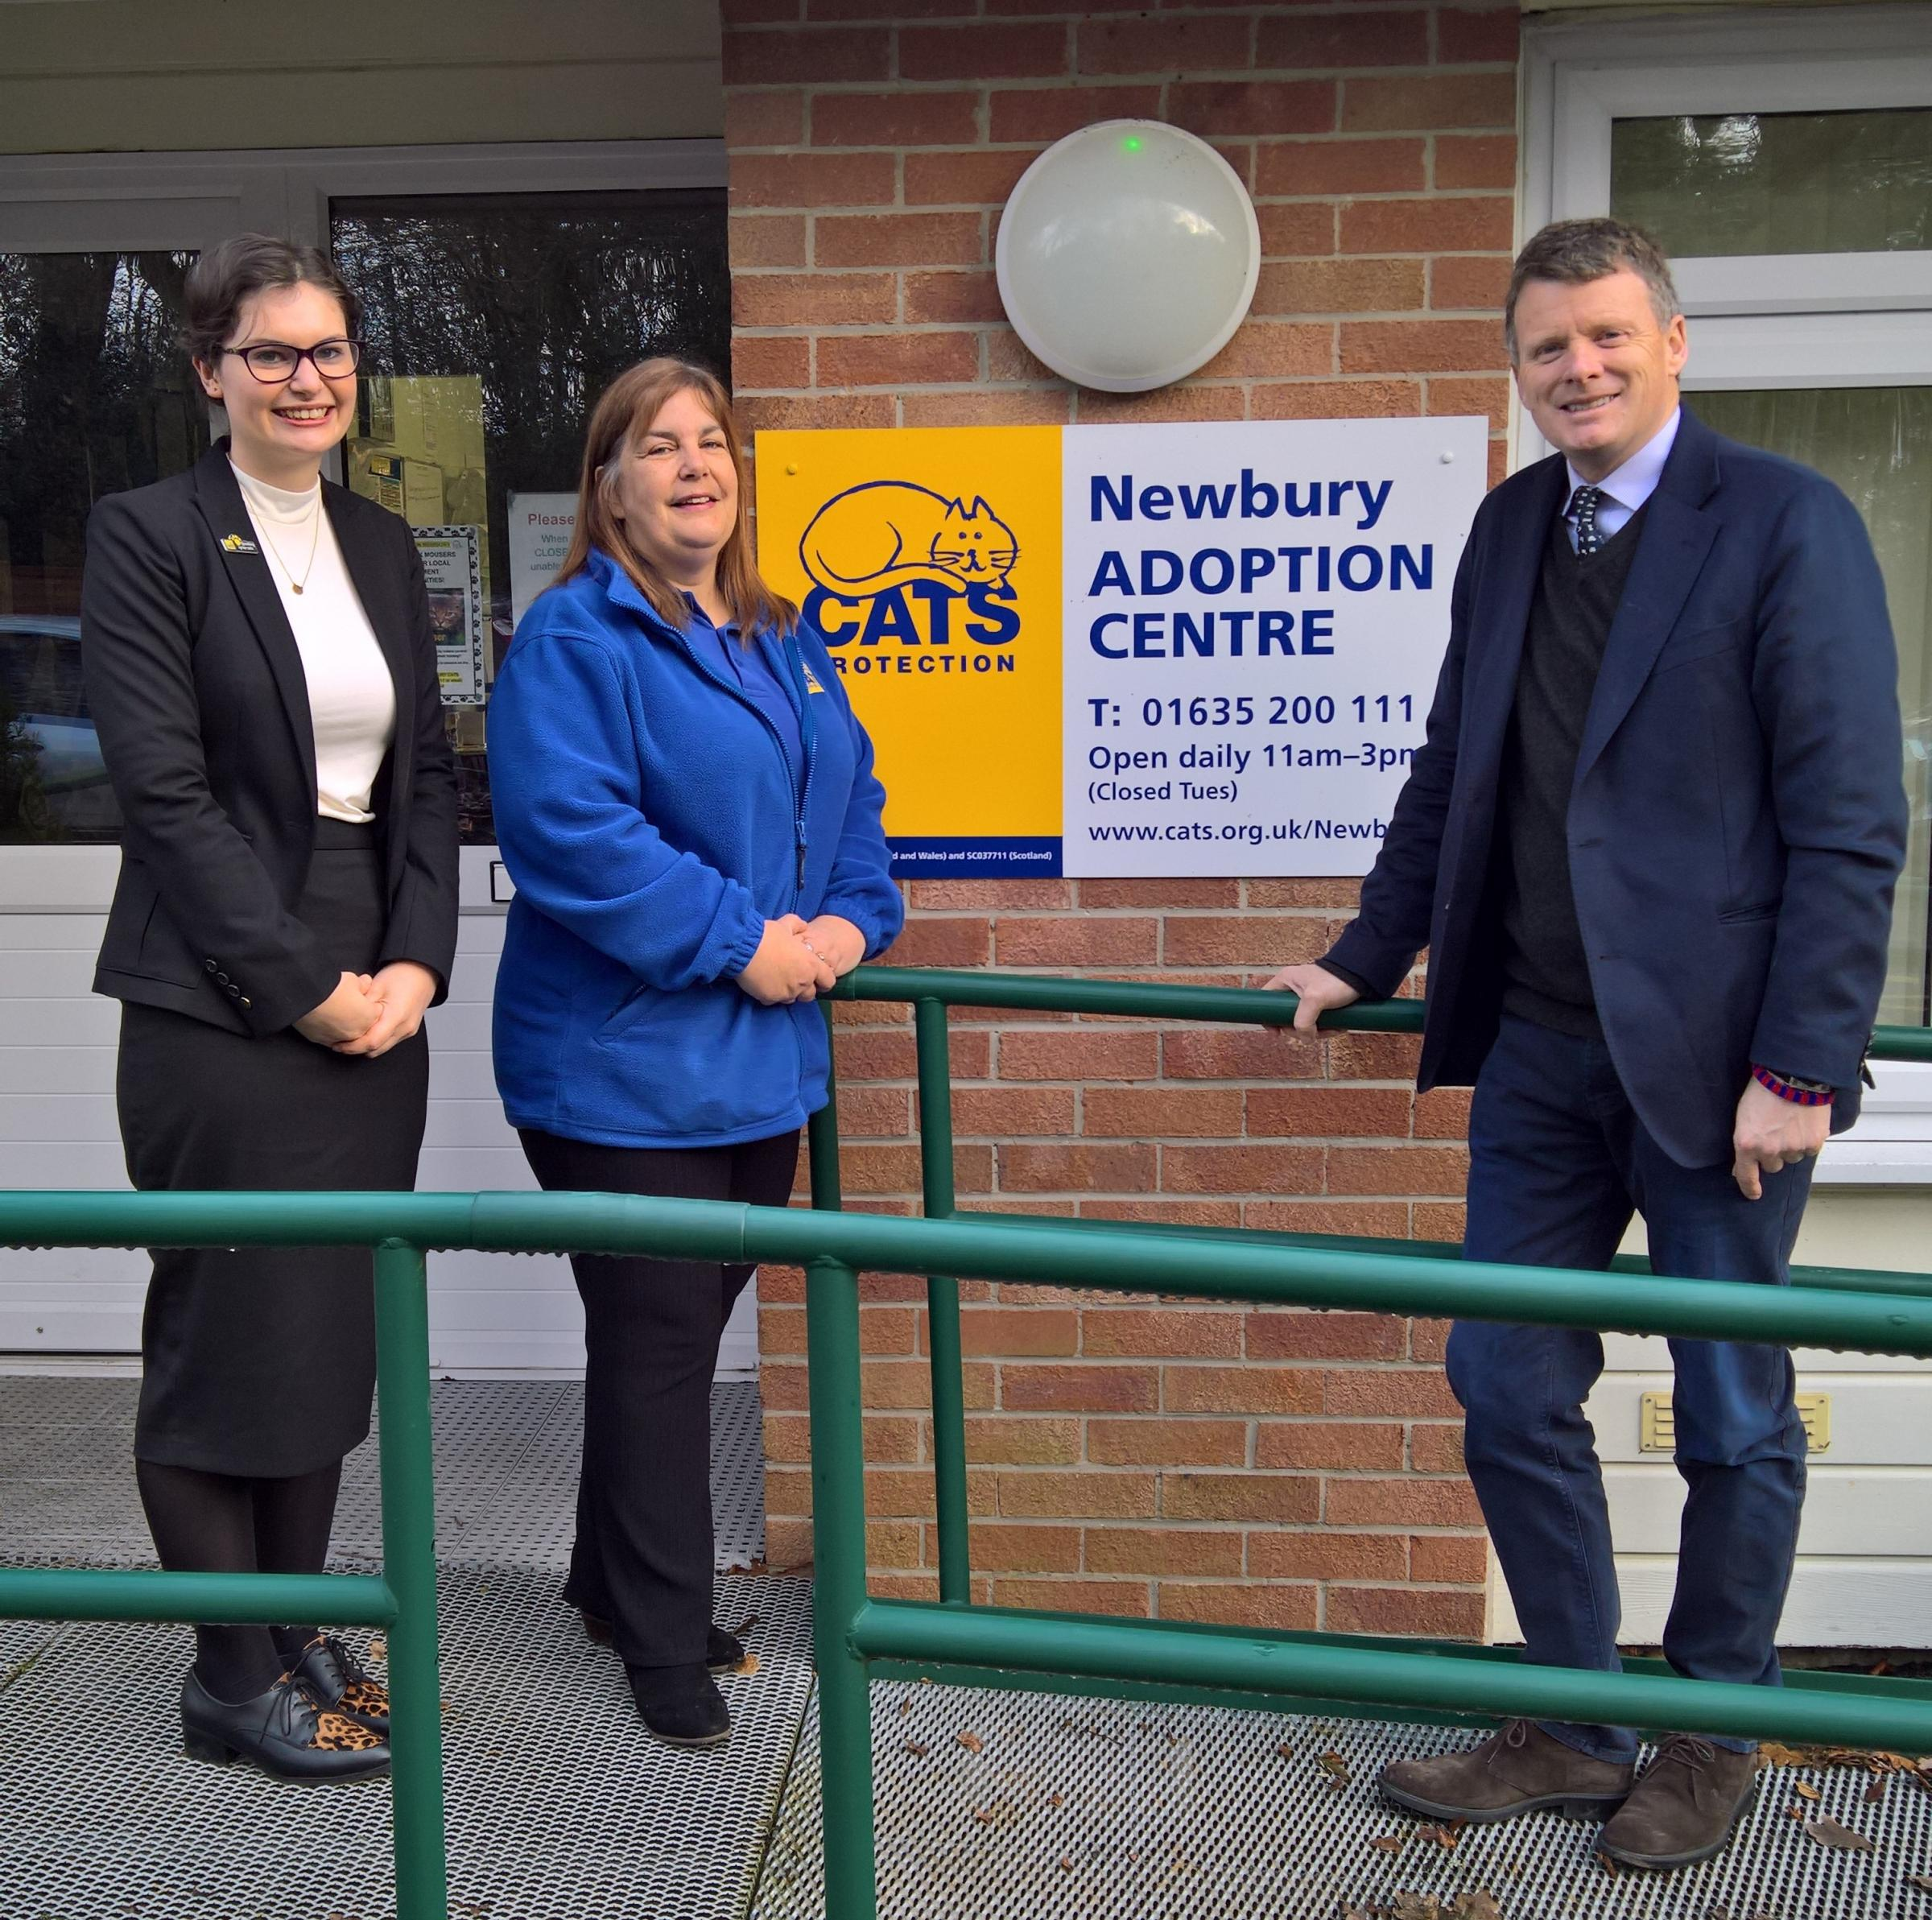 Richard Benyon visits cat adoption centre after Westminster debates on animal welfare